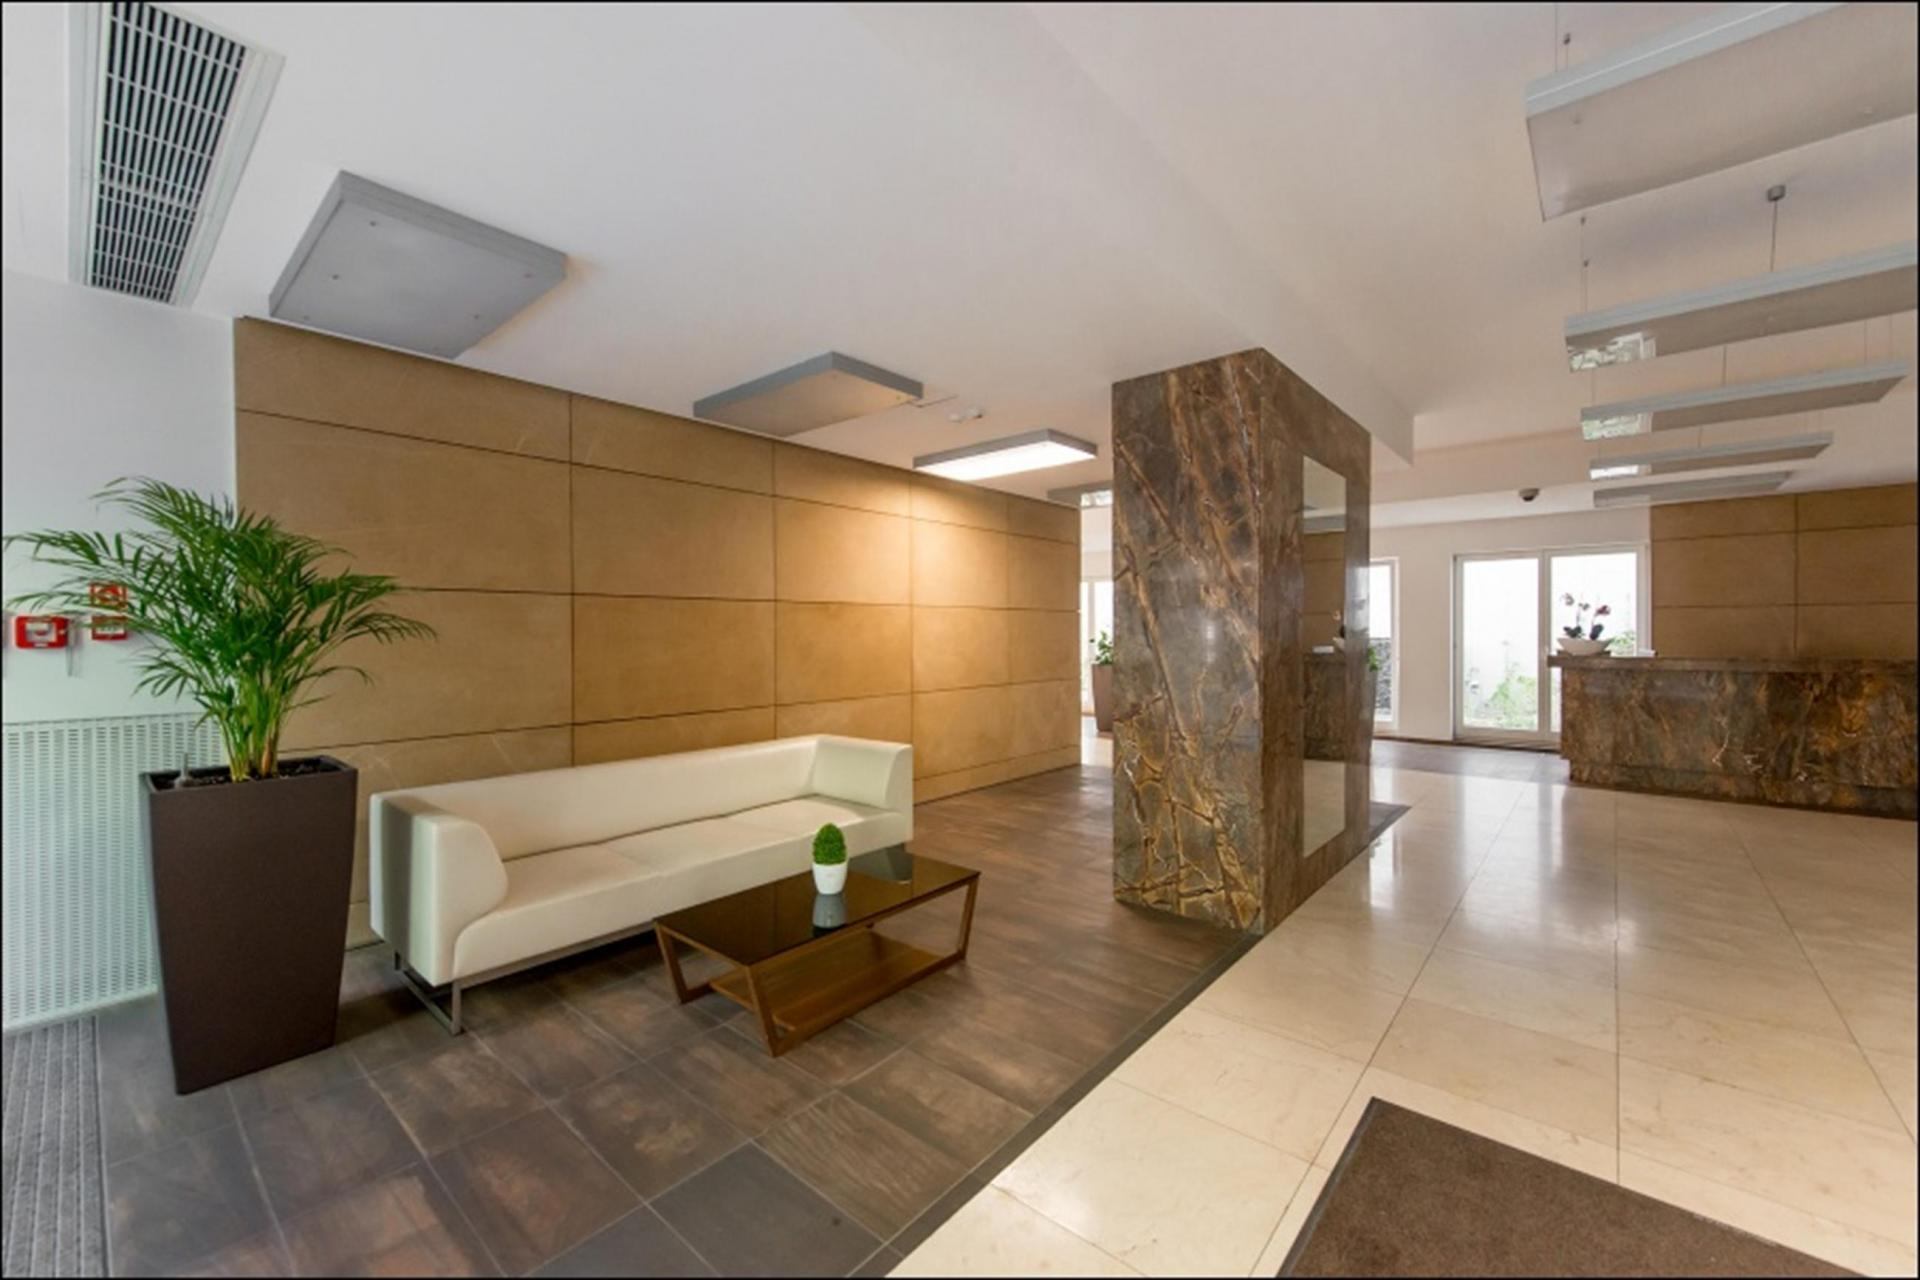 Lobby at Piekna Apartment, Centre, Warsaw